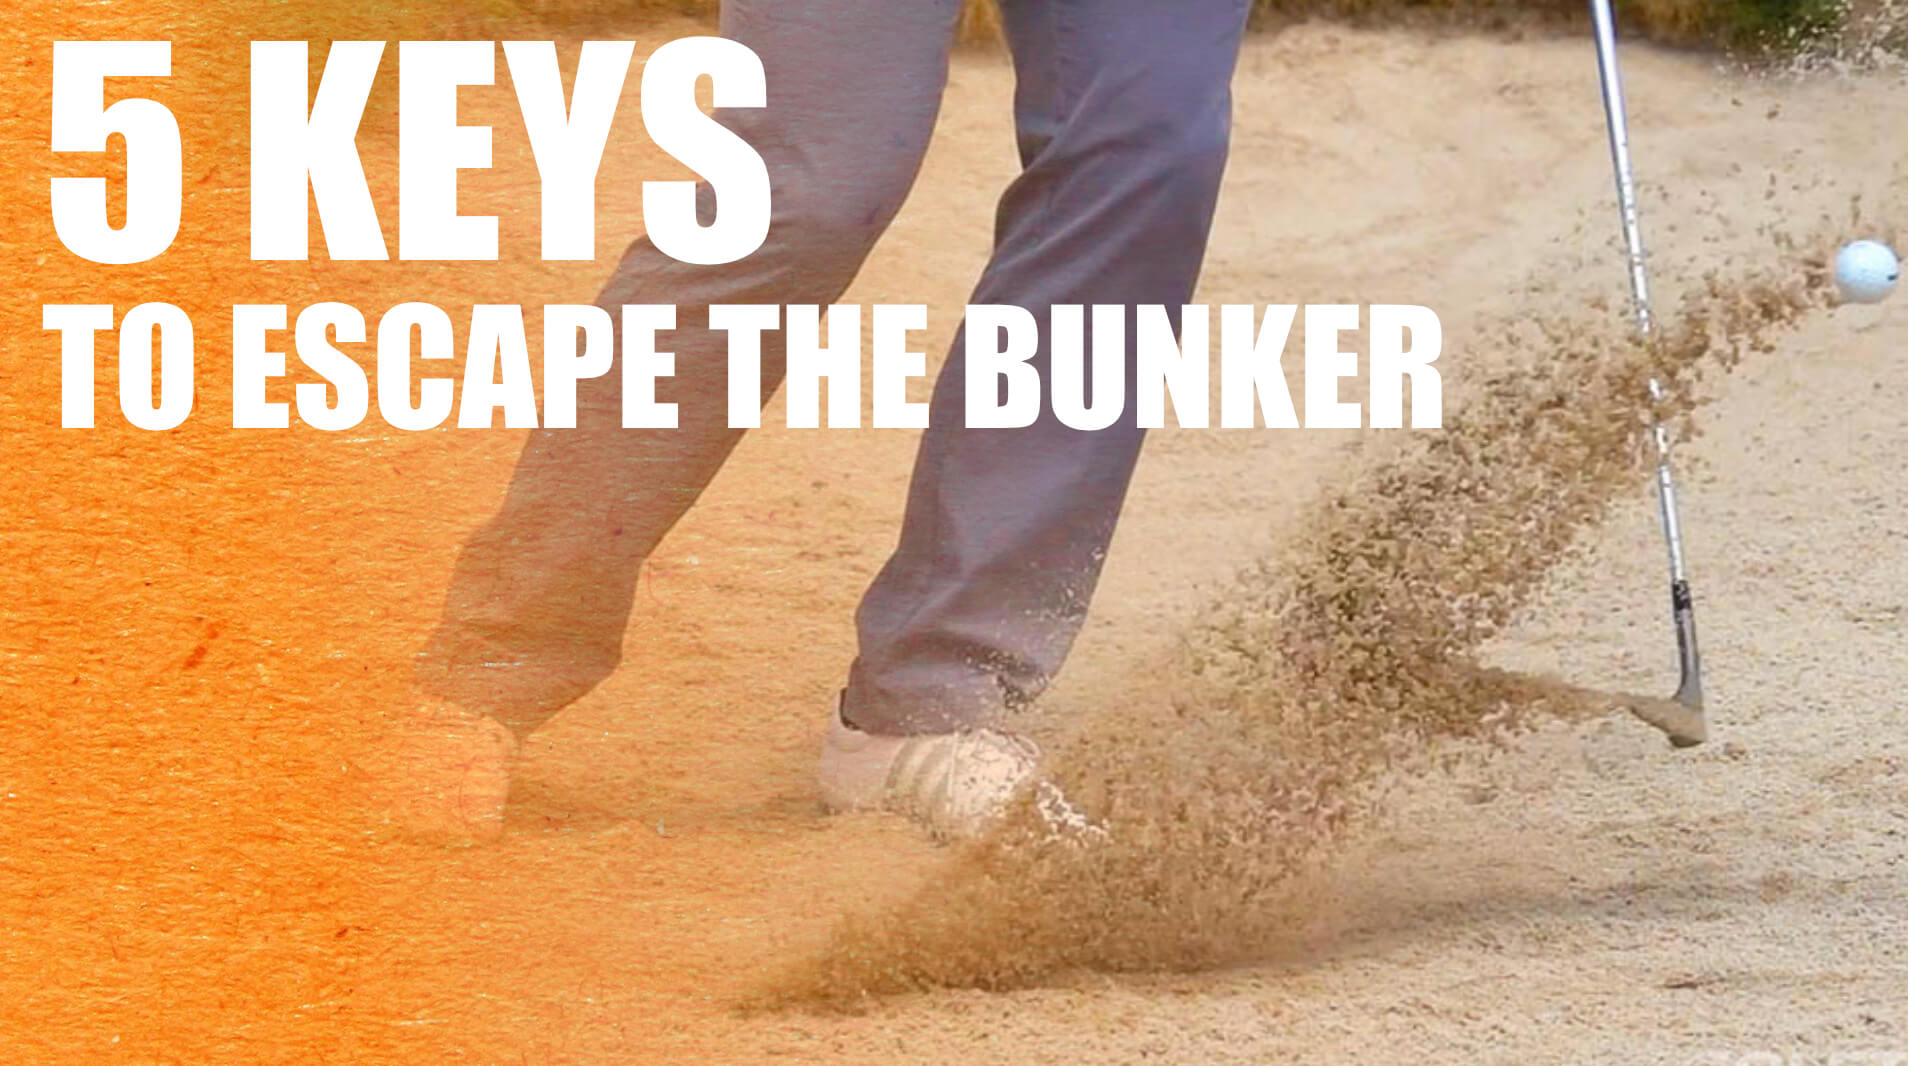 5 Keys to Escape the Bunkers